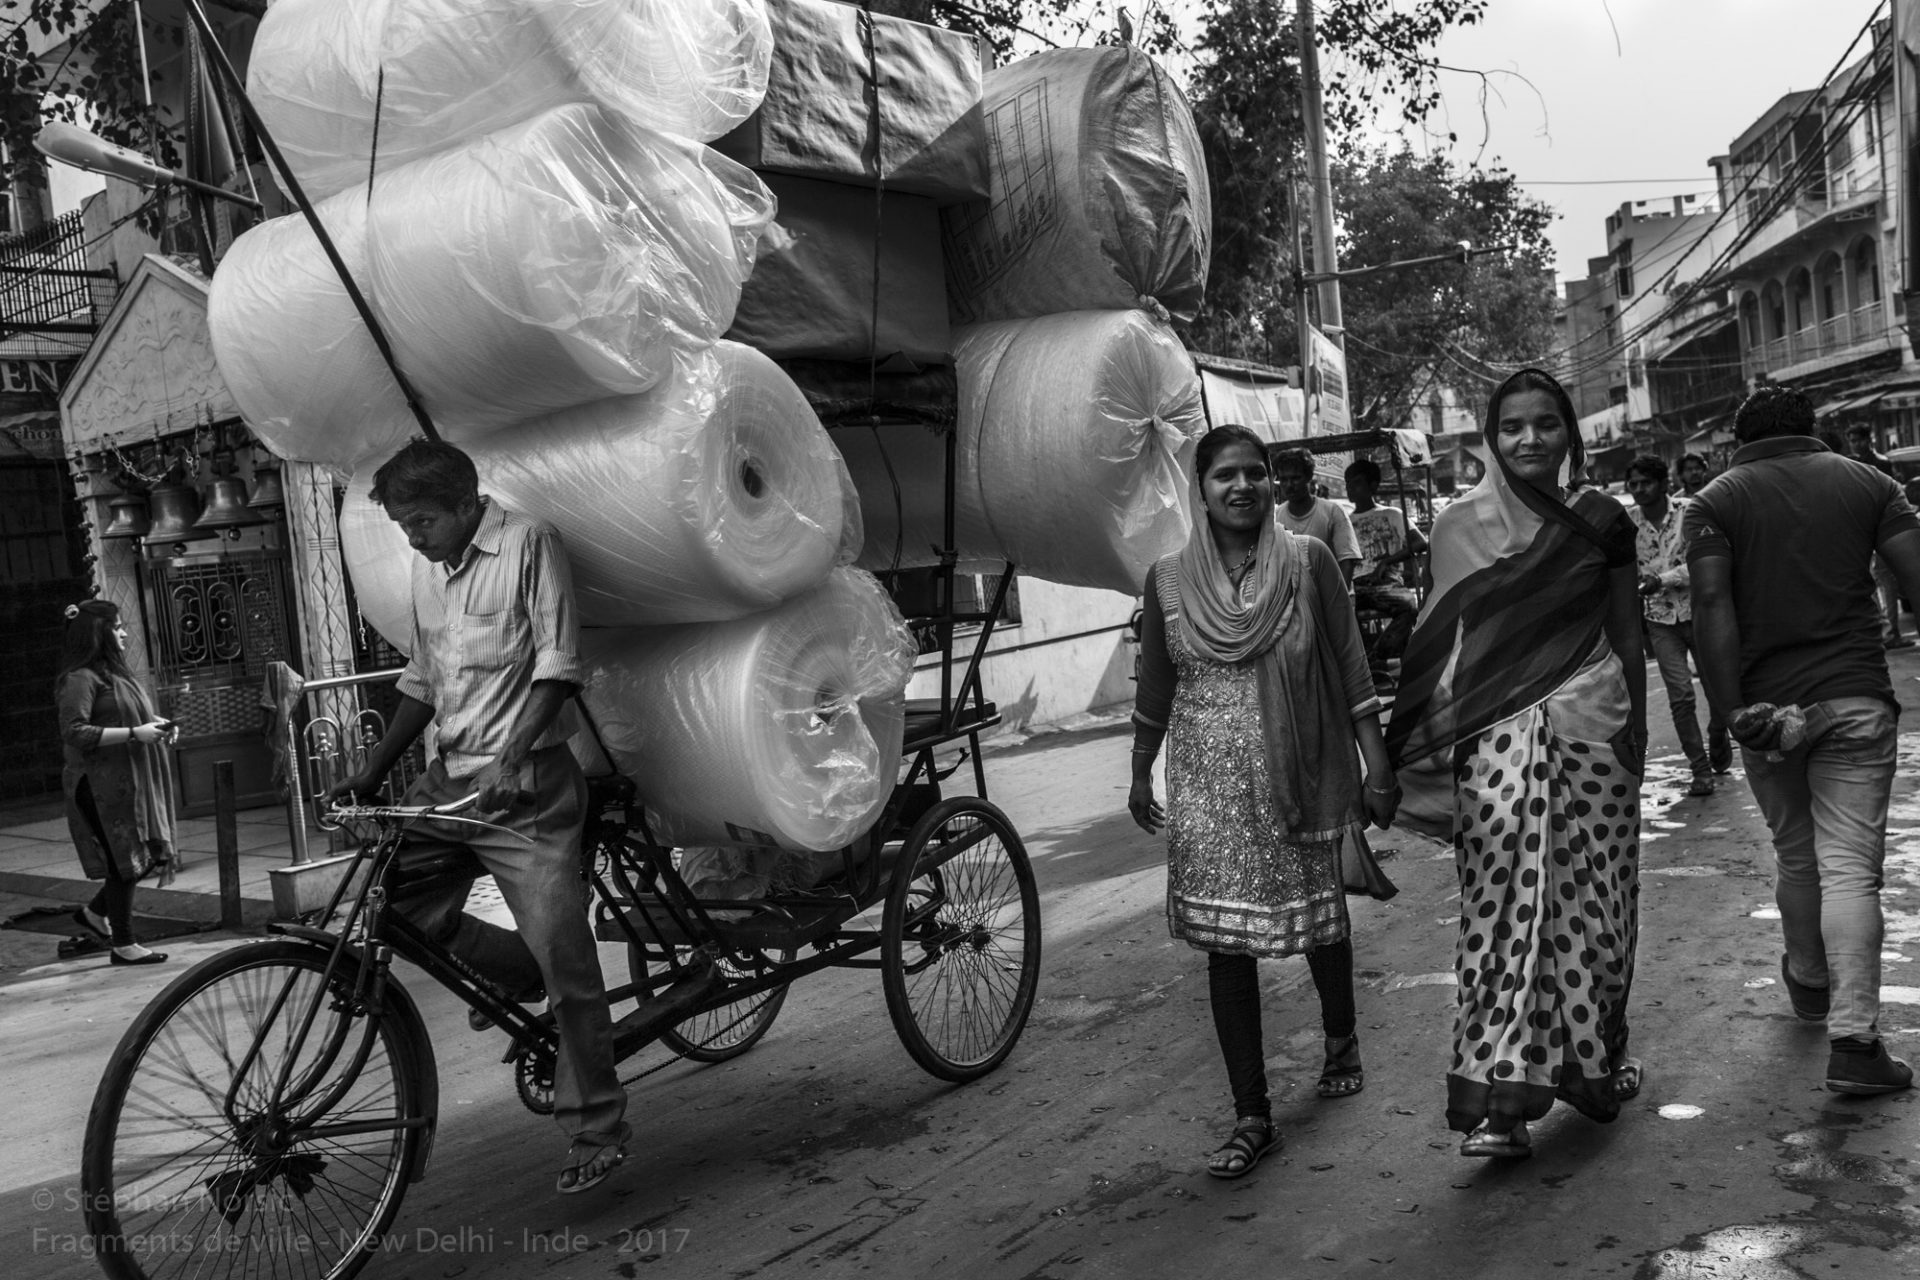 Fragments de villes : New Delhi - Inde. Stephan Norsic  photoqra